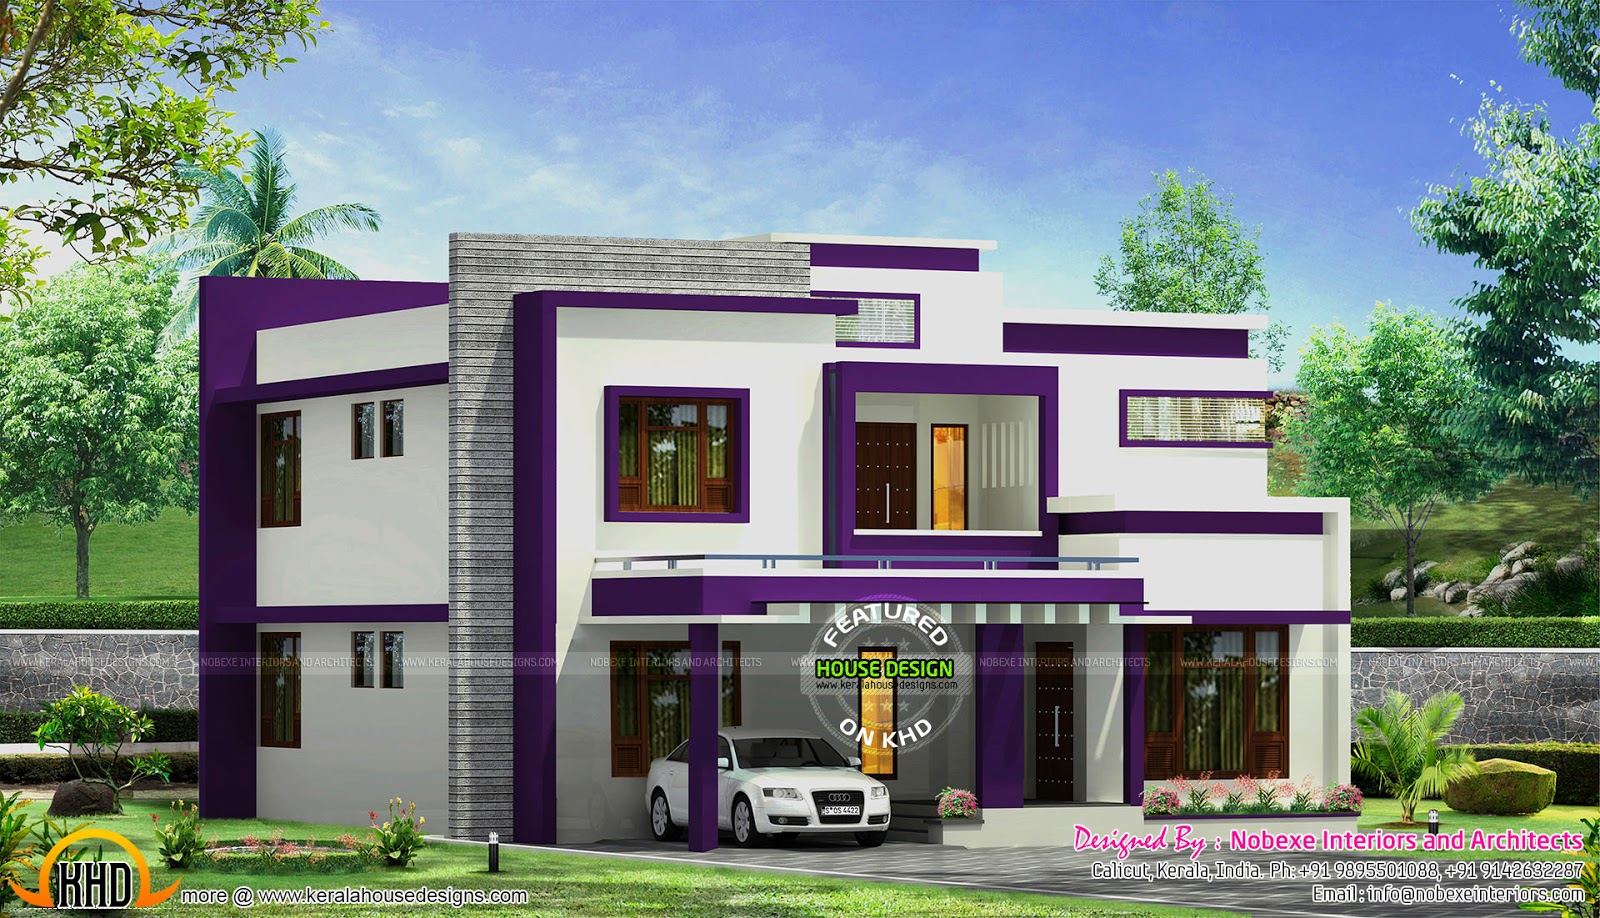 Contemporary home design by nobexe interiors kerala home for House designers house plans